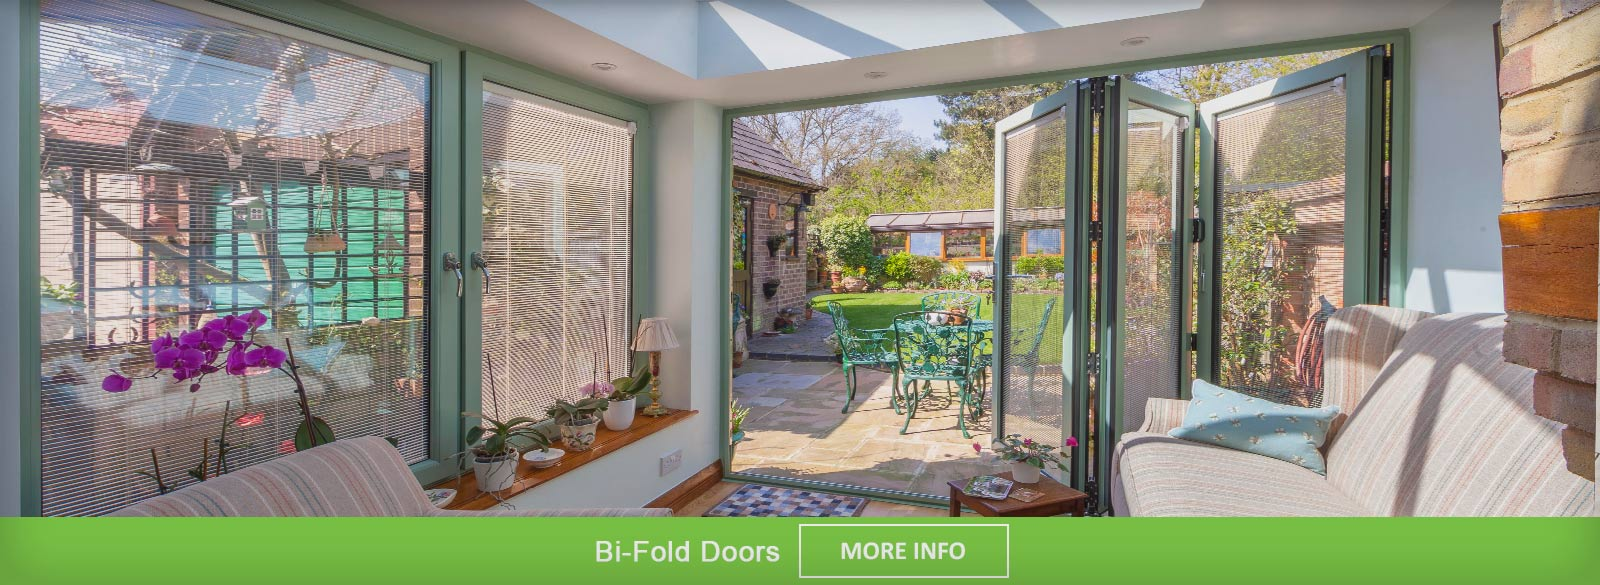 Modern Bi Fold doors, viewed from inside when the doors are closed